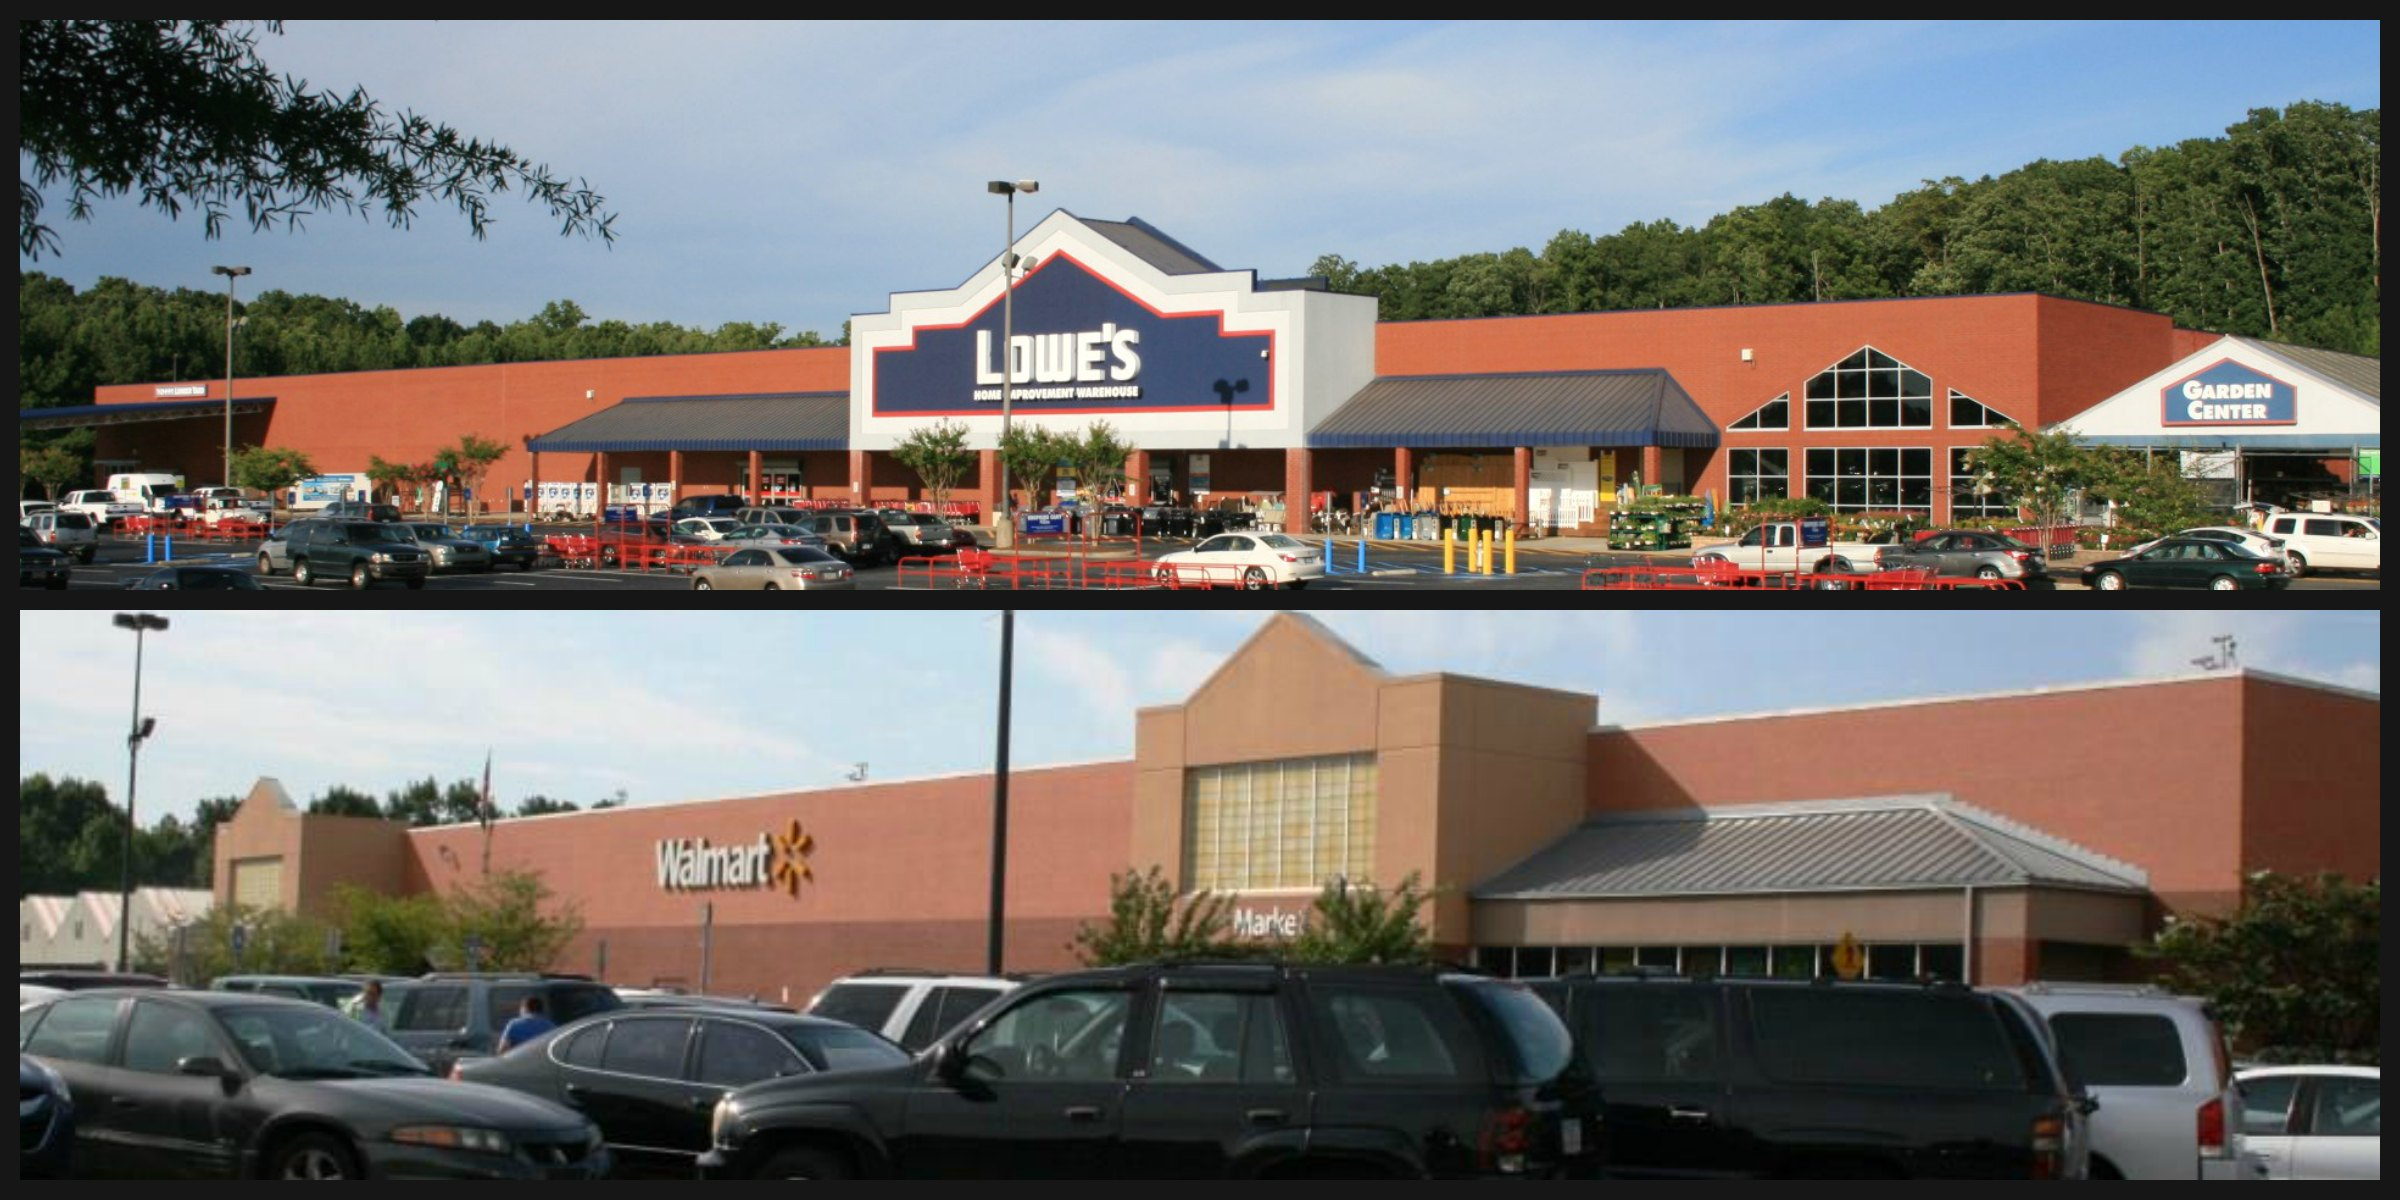 Wal Mart Anchor Tenant & Lowes Shadow Anchor Restaurant Space